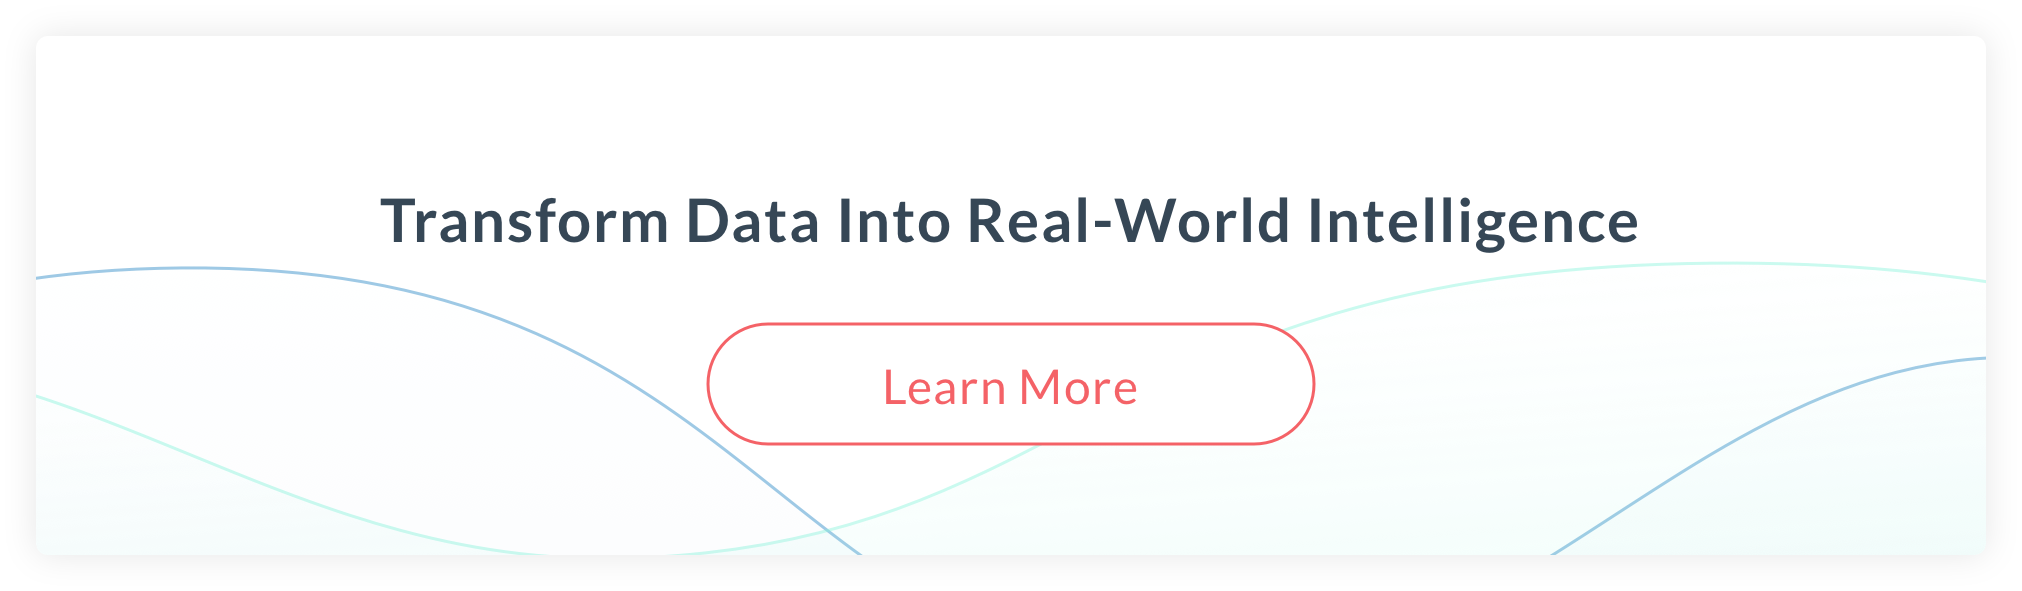 Transform data into real-world intelligence